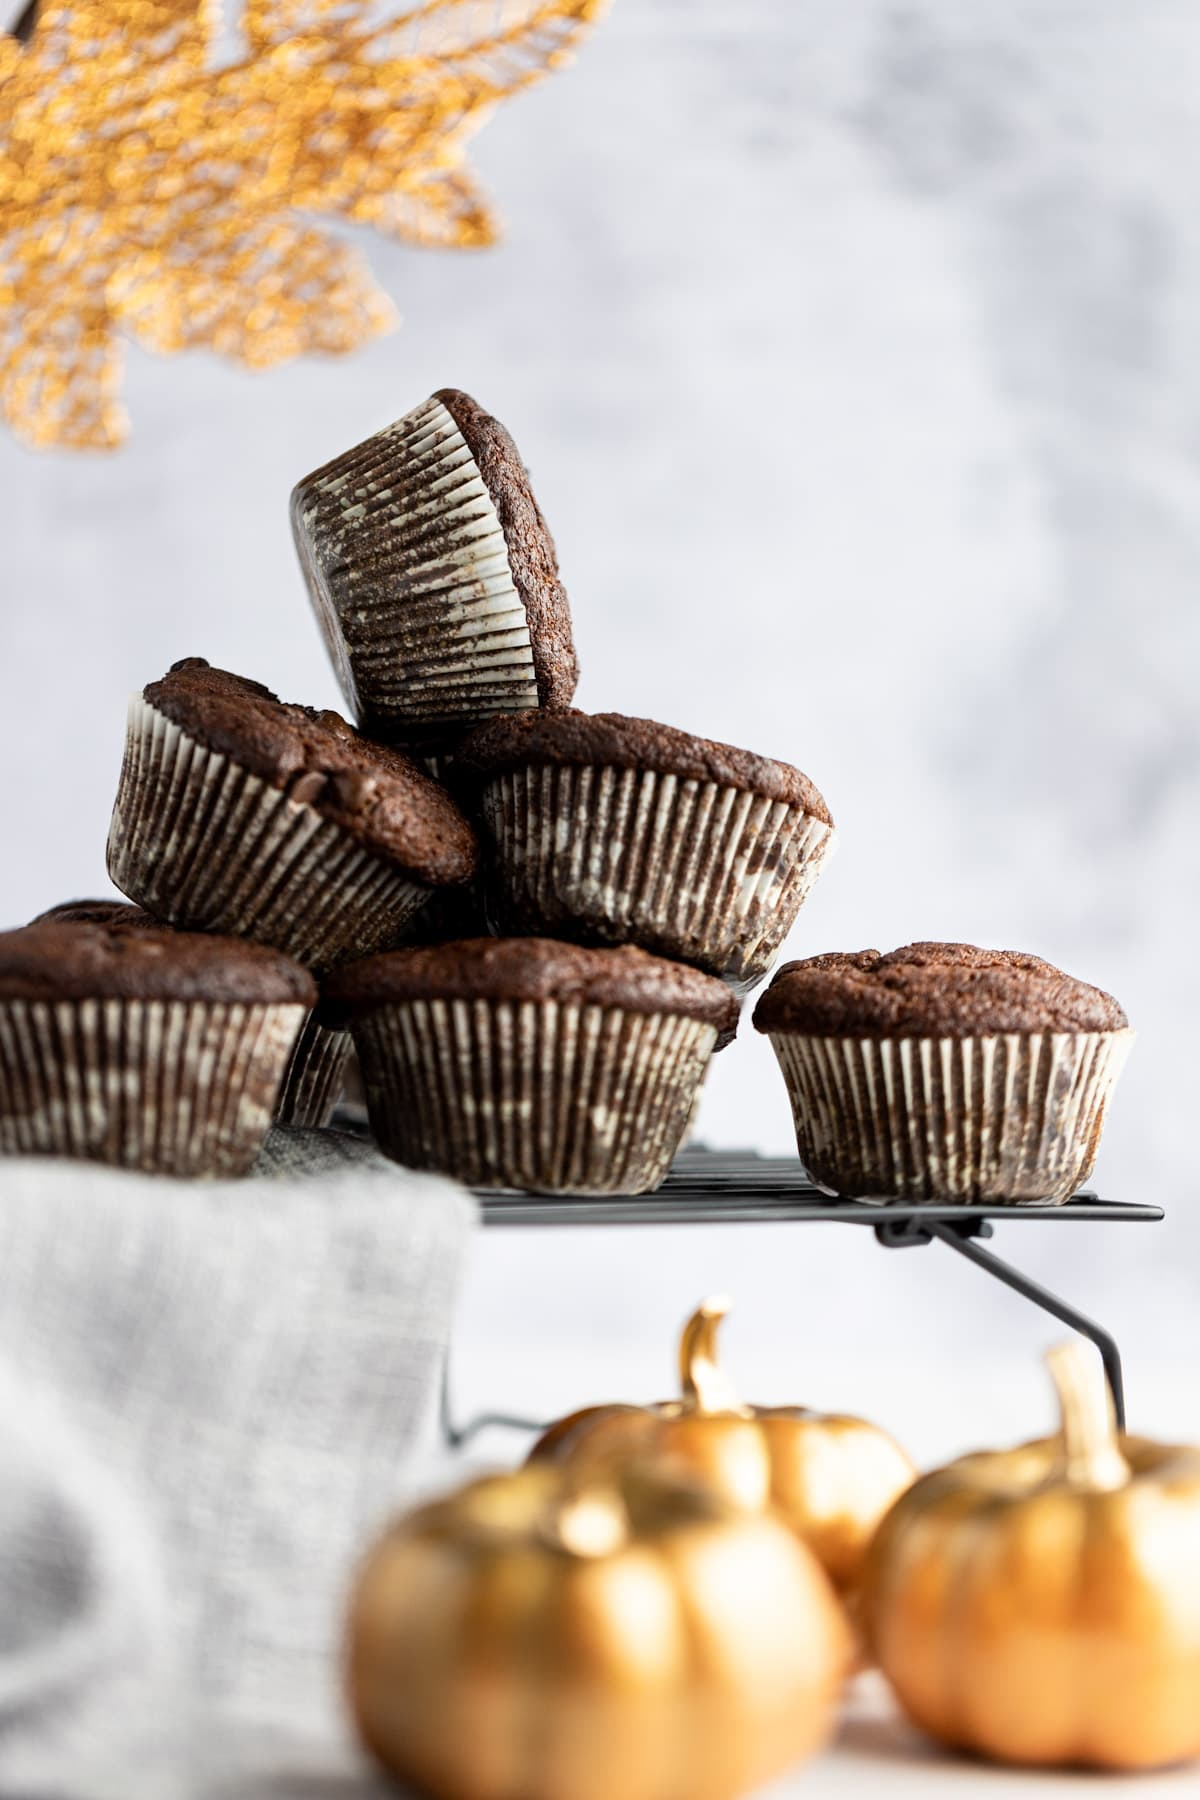 Up close view of a stack of protein muffins on a black wire rack, with a stack of golden pumpkins in front.